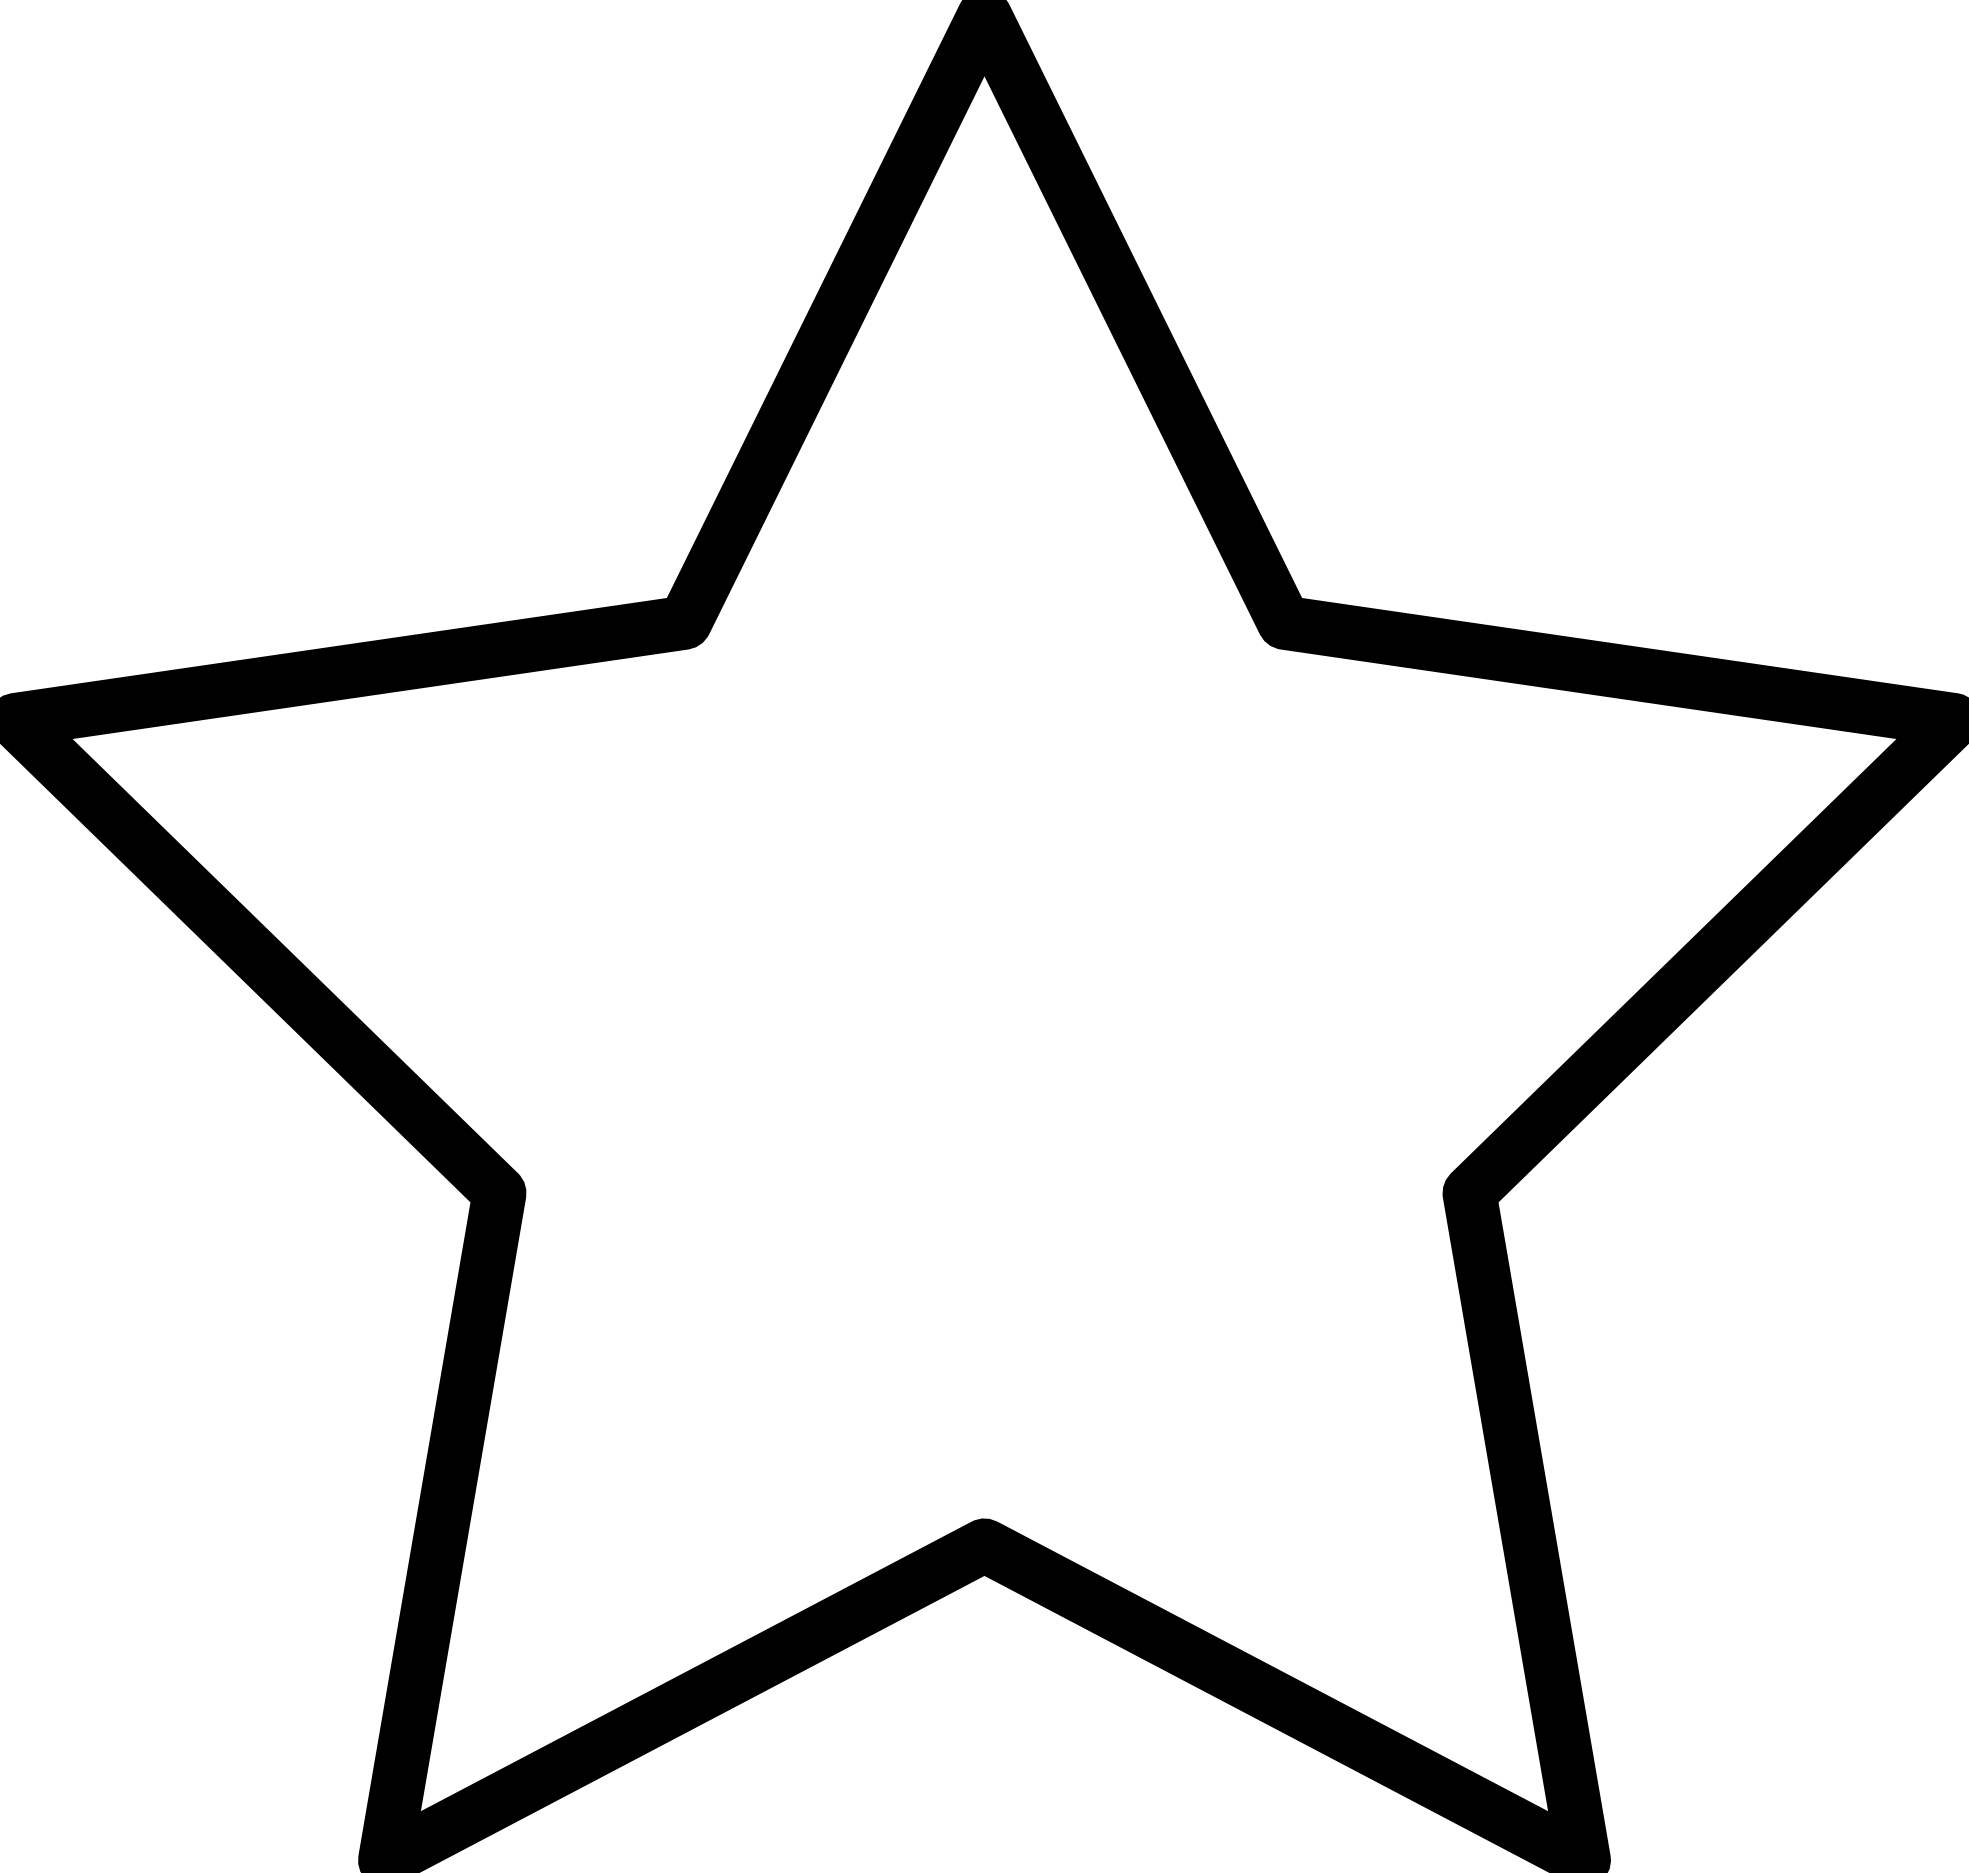 star clipart black and white 4cbkbedei png 1969 1873 kids yarn rh pinterest com free star clipart downloads christmas star clipart free